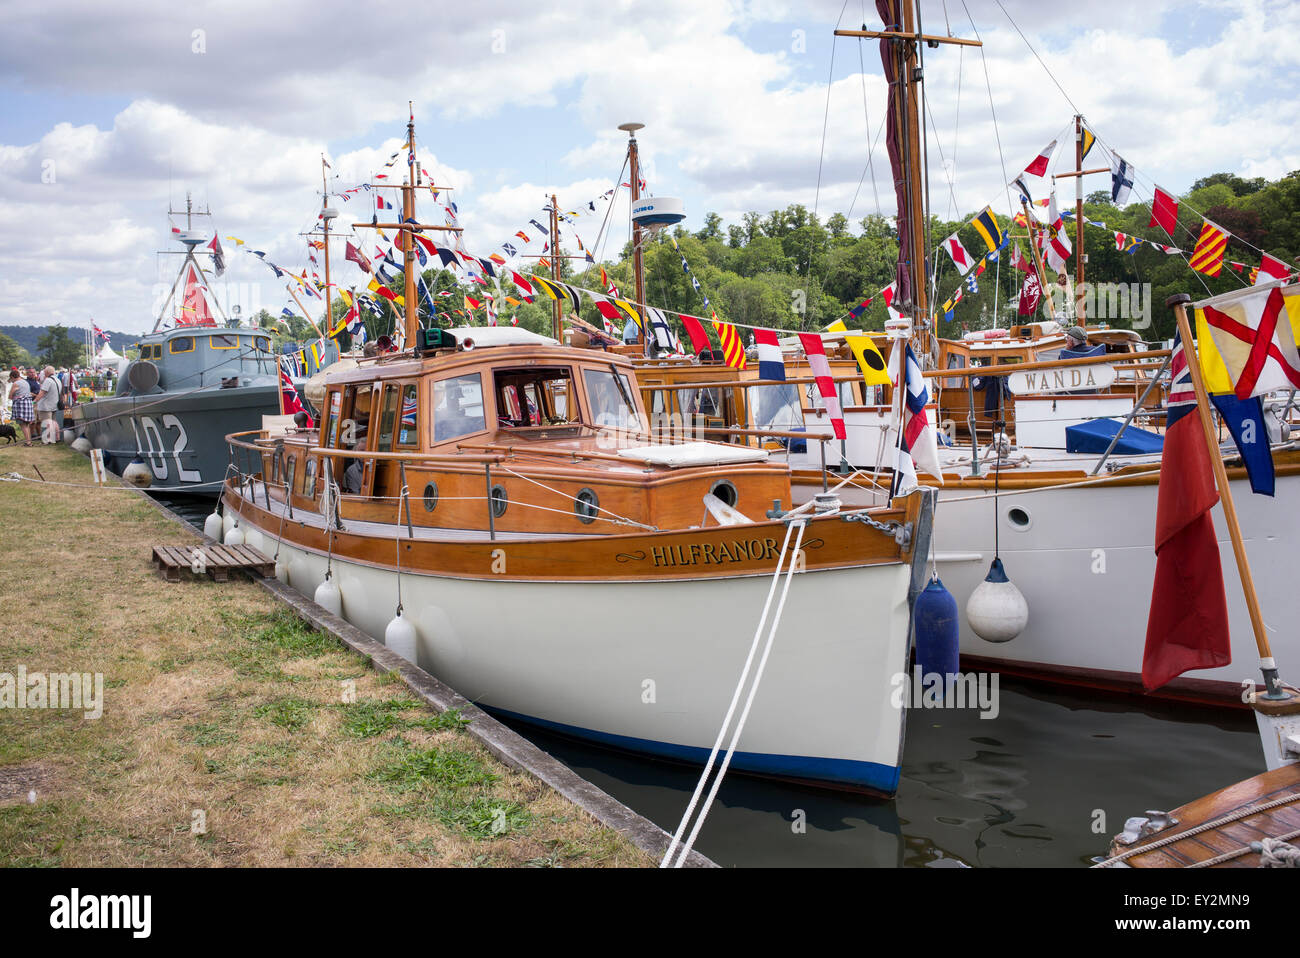 Dunkirk little ships at the Thames Traditional Boat Festival, Fawley Meadows, Henley On Thames, Oxfordshire, England Stock Photo